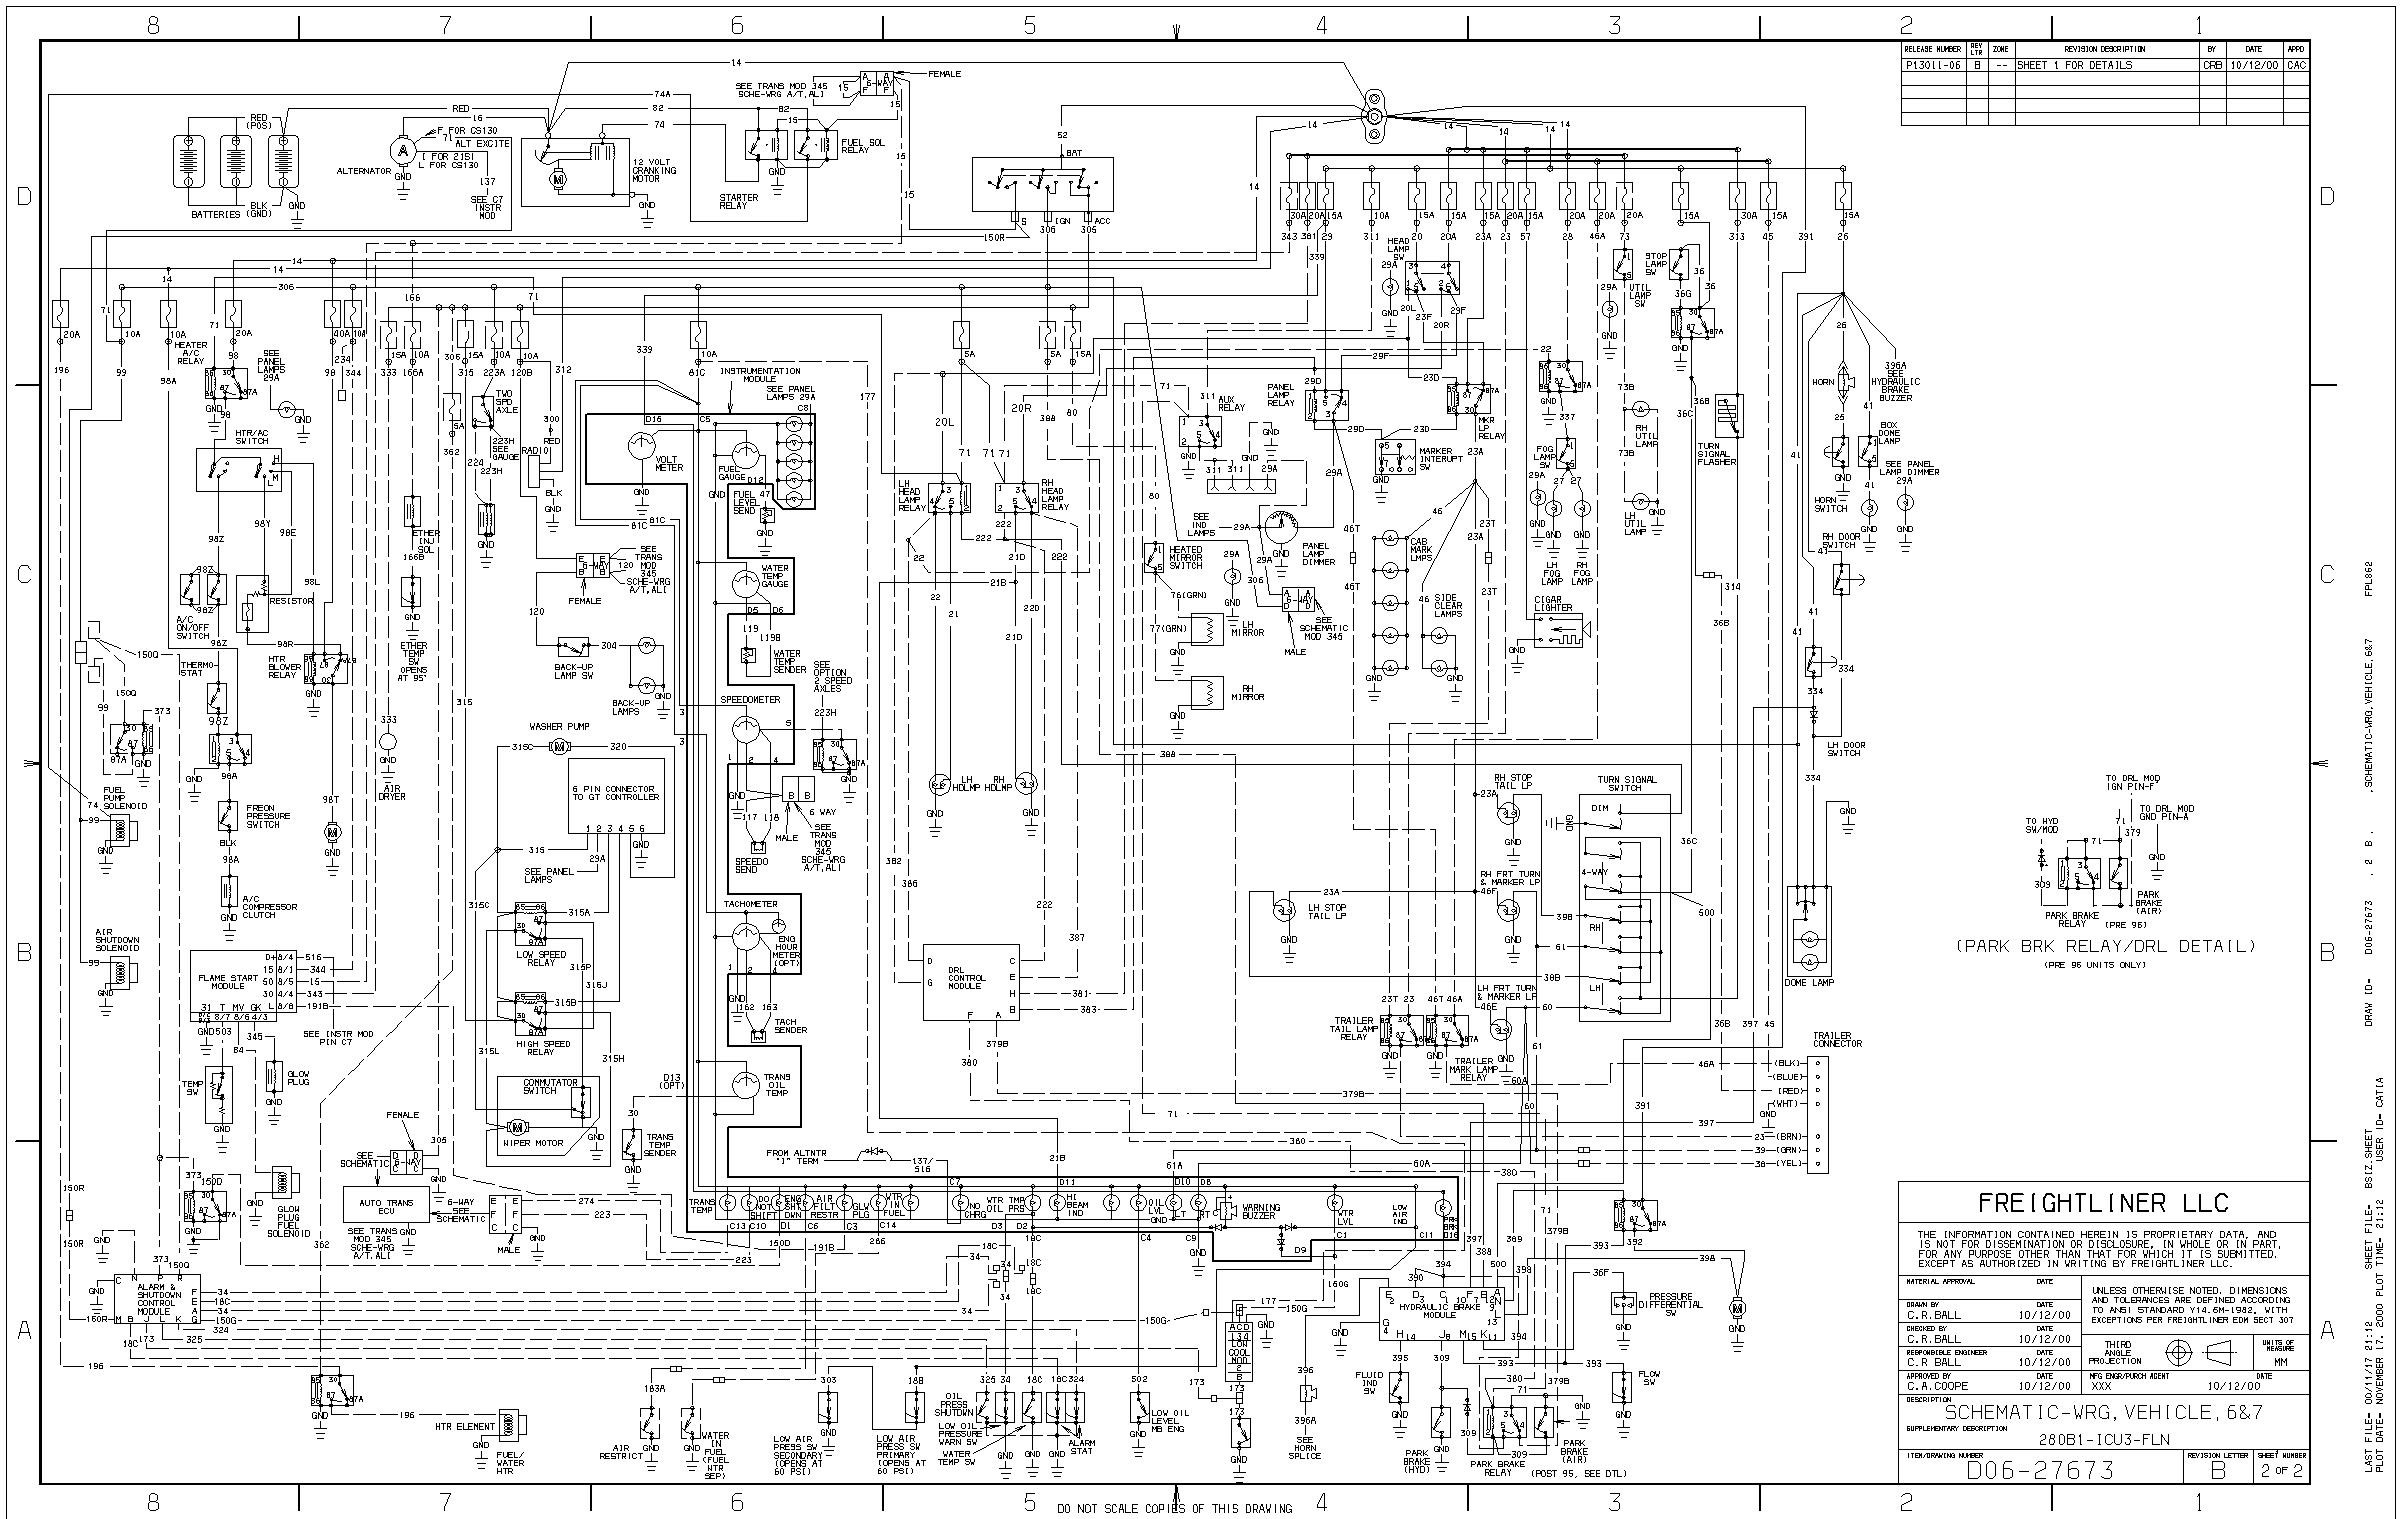 Toyota Camry 2007 Engine Diagram Wiring Diagram Sterling Truck Wiring Diagrams 2003 toyota Camry 2 4 Of Toyota Camry 2007 Engine Diagram